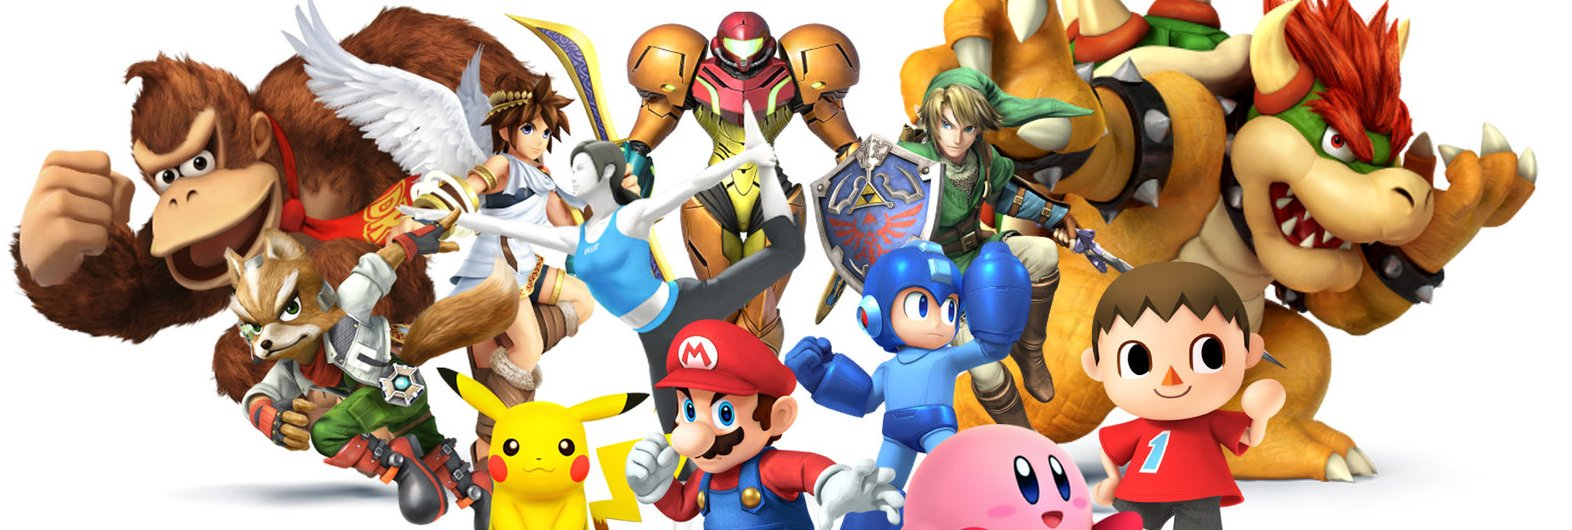 super_smash_bros_for_wii_u___3ds_wallpaper_by_seancantrell-d68odyz